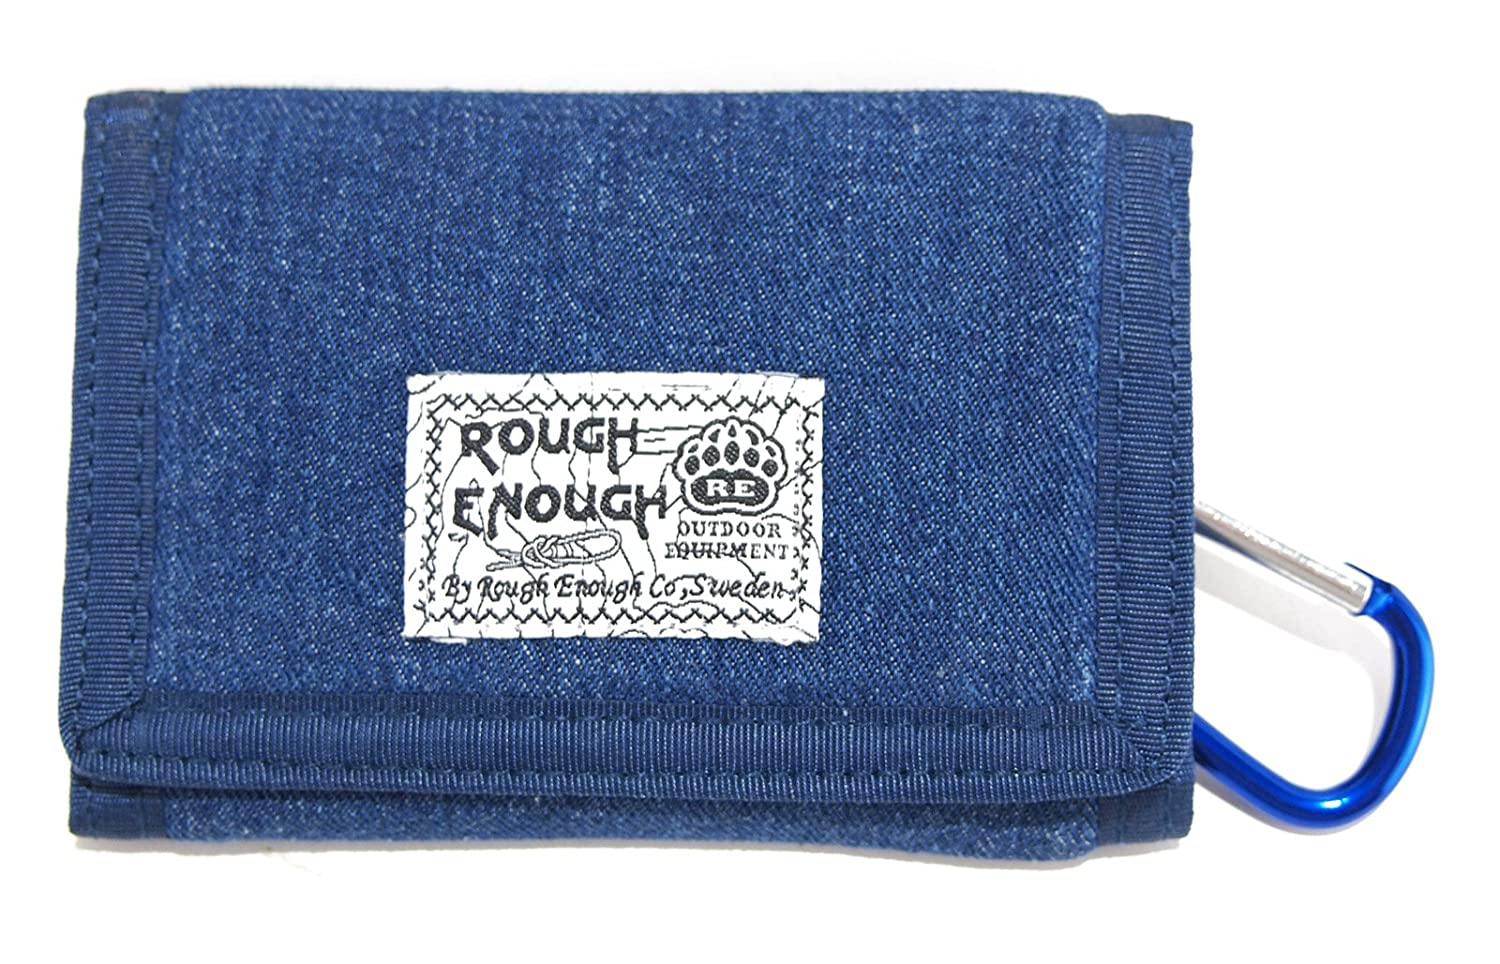 Rough Enough Denim Canvas Vintage Blue Classic Stylish Wallet Purse For Coins Holder Organizer Case With Zippered Pockets Trifold Coin Pocket Blue ROUGH ENOUGH INC. UK-RE8301